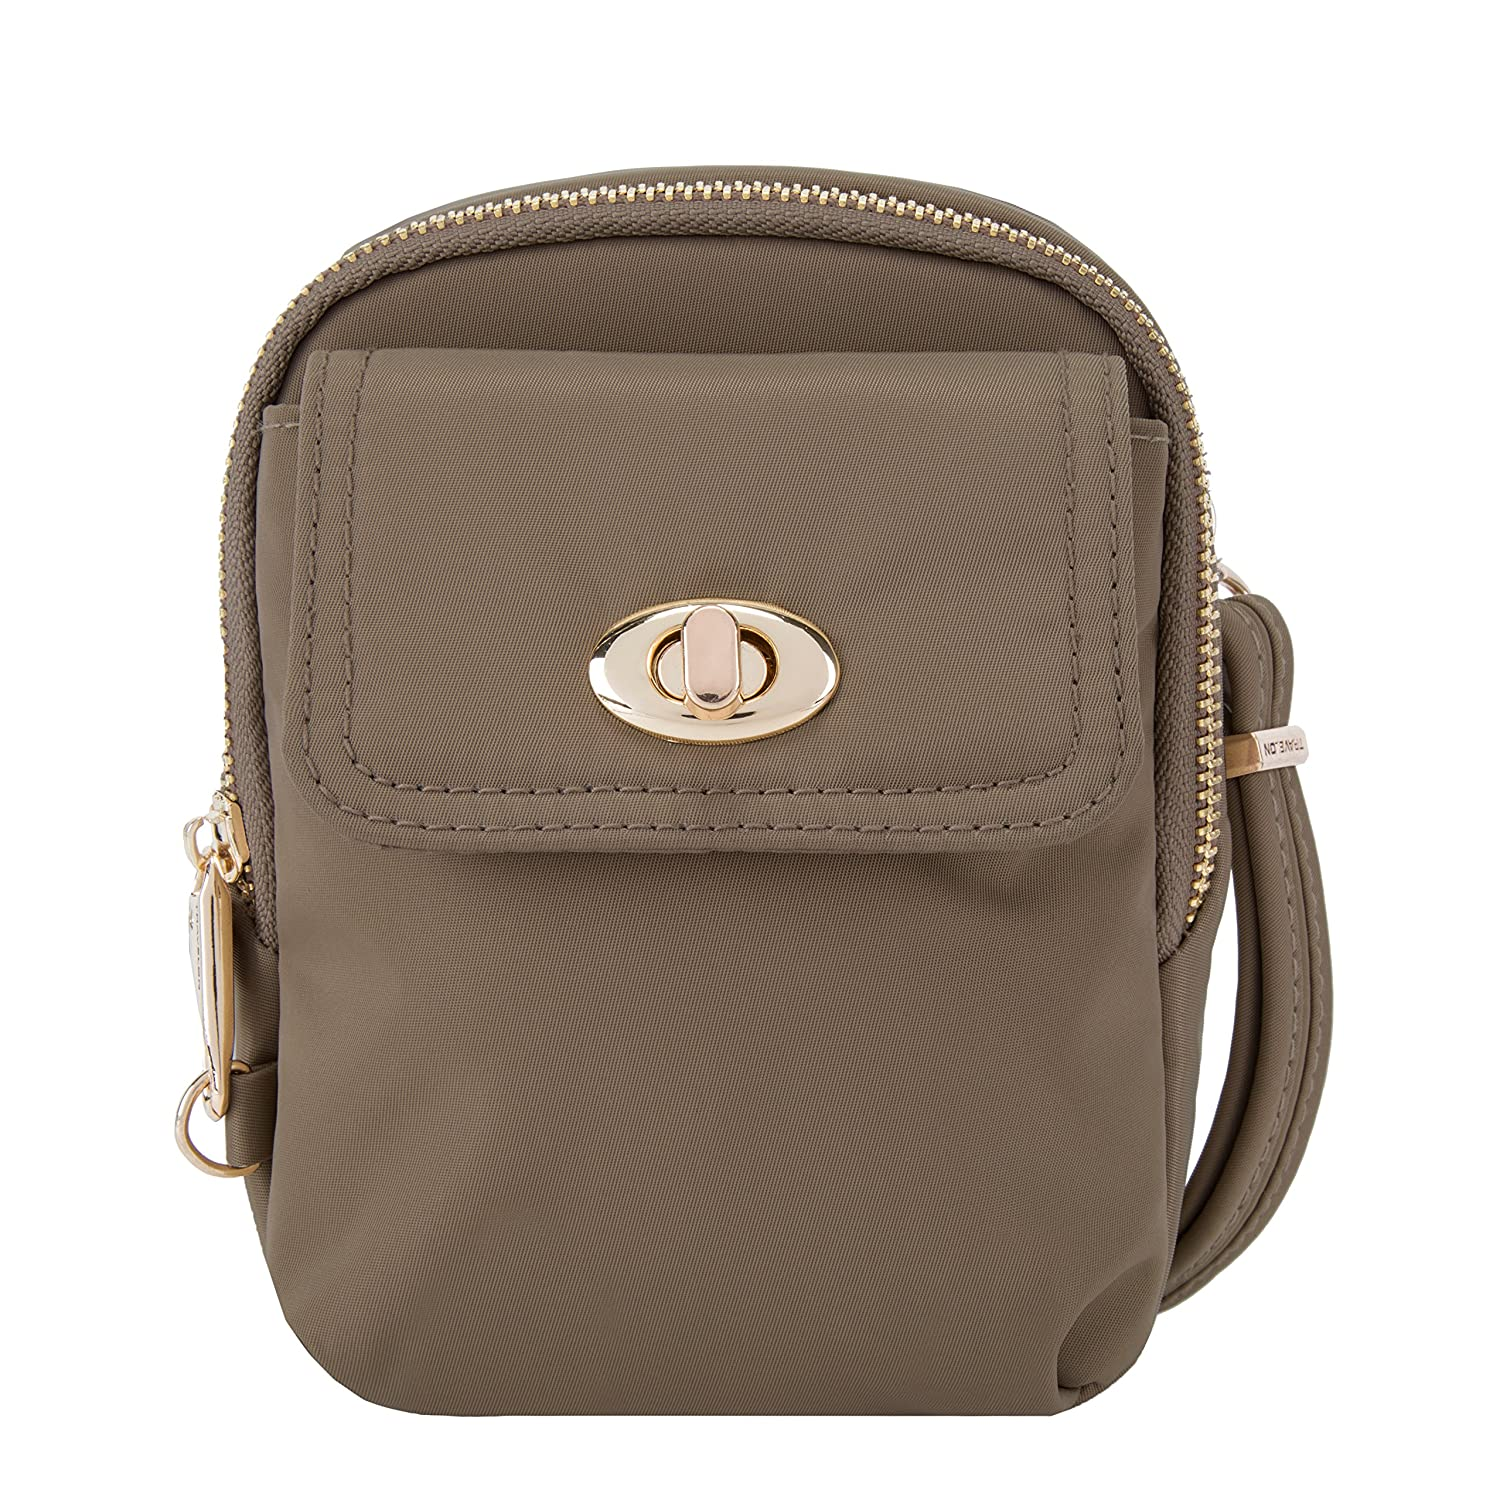 8f00be2e6b Amazon.com  Travelon Women s Anti-Theft Tailored Crossbody Phone Pouch Cross  Body Bag Garnet One Size  Cambridge Select